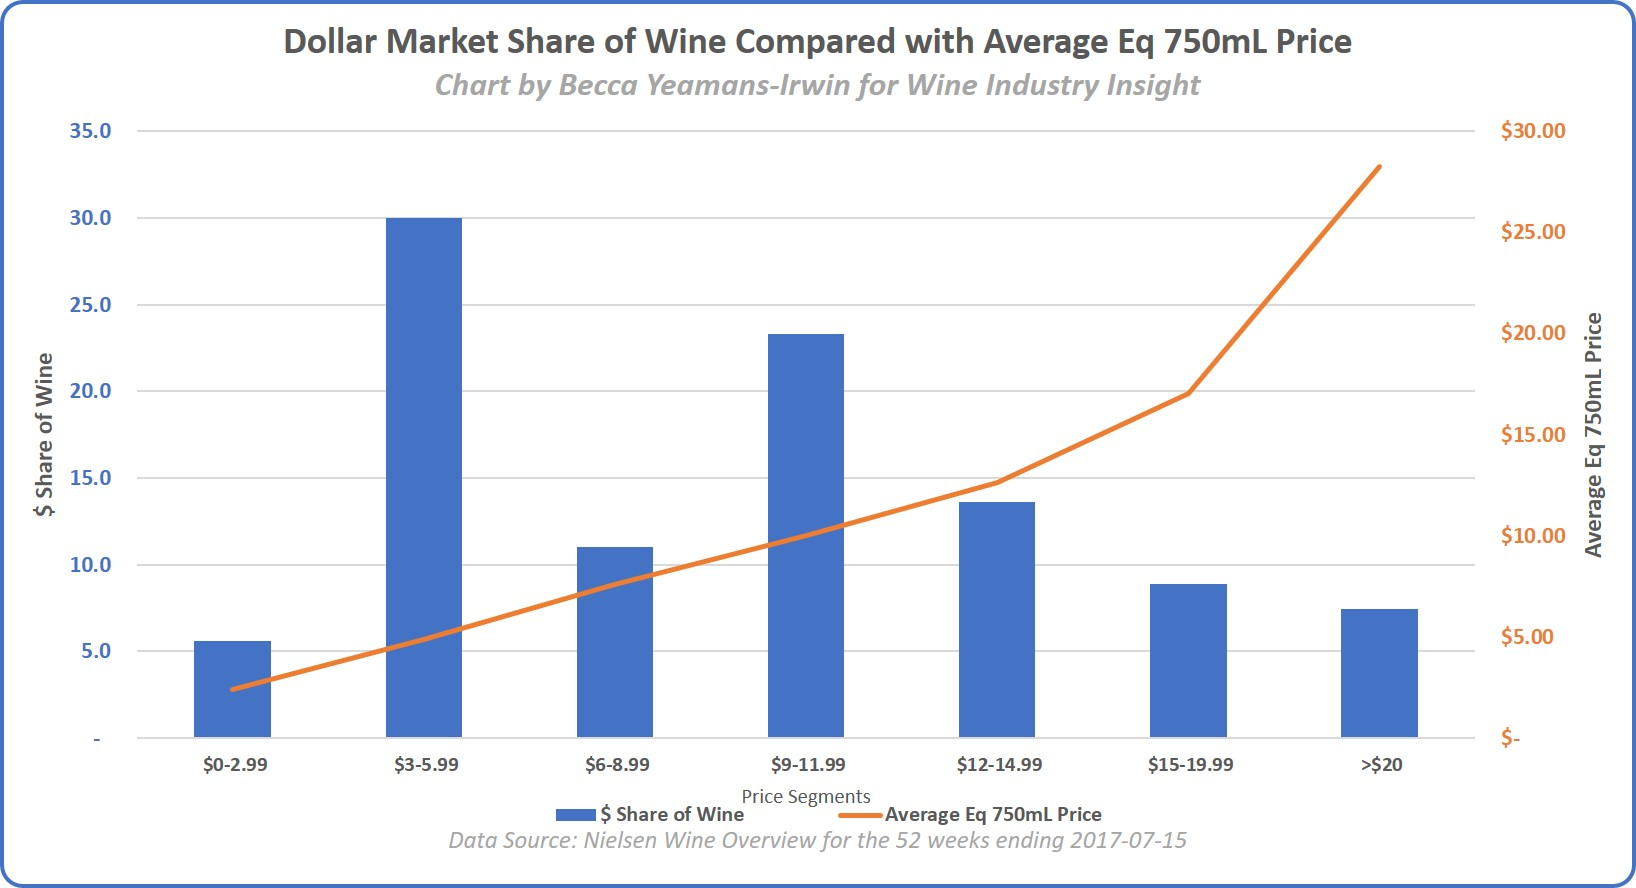 Market Share of wine compared with average eq 750mL price